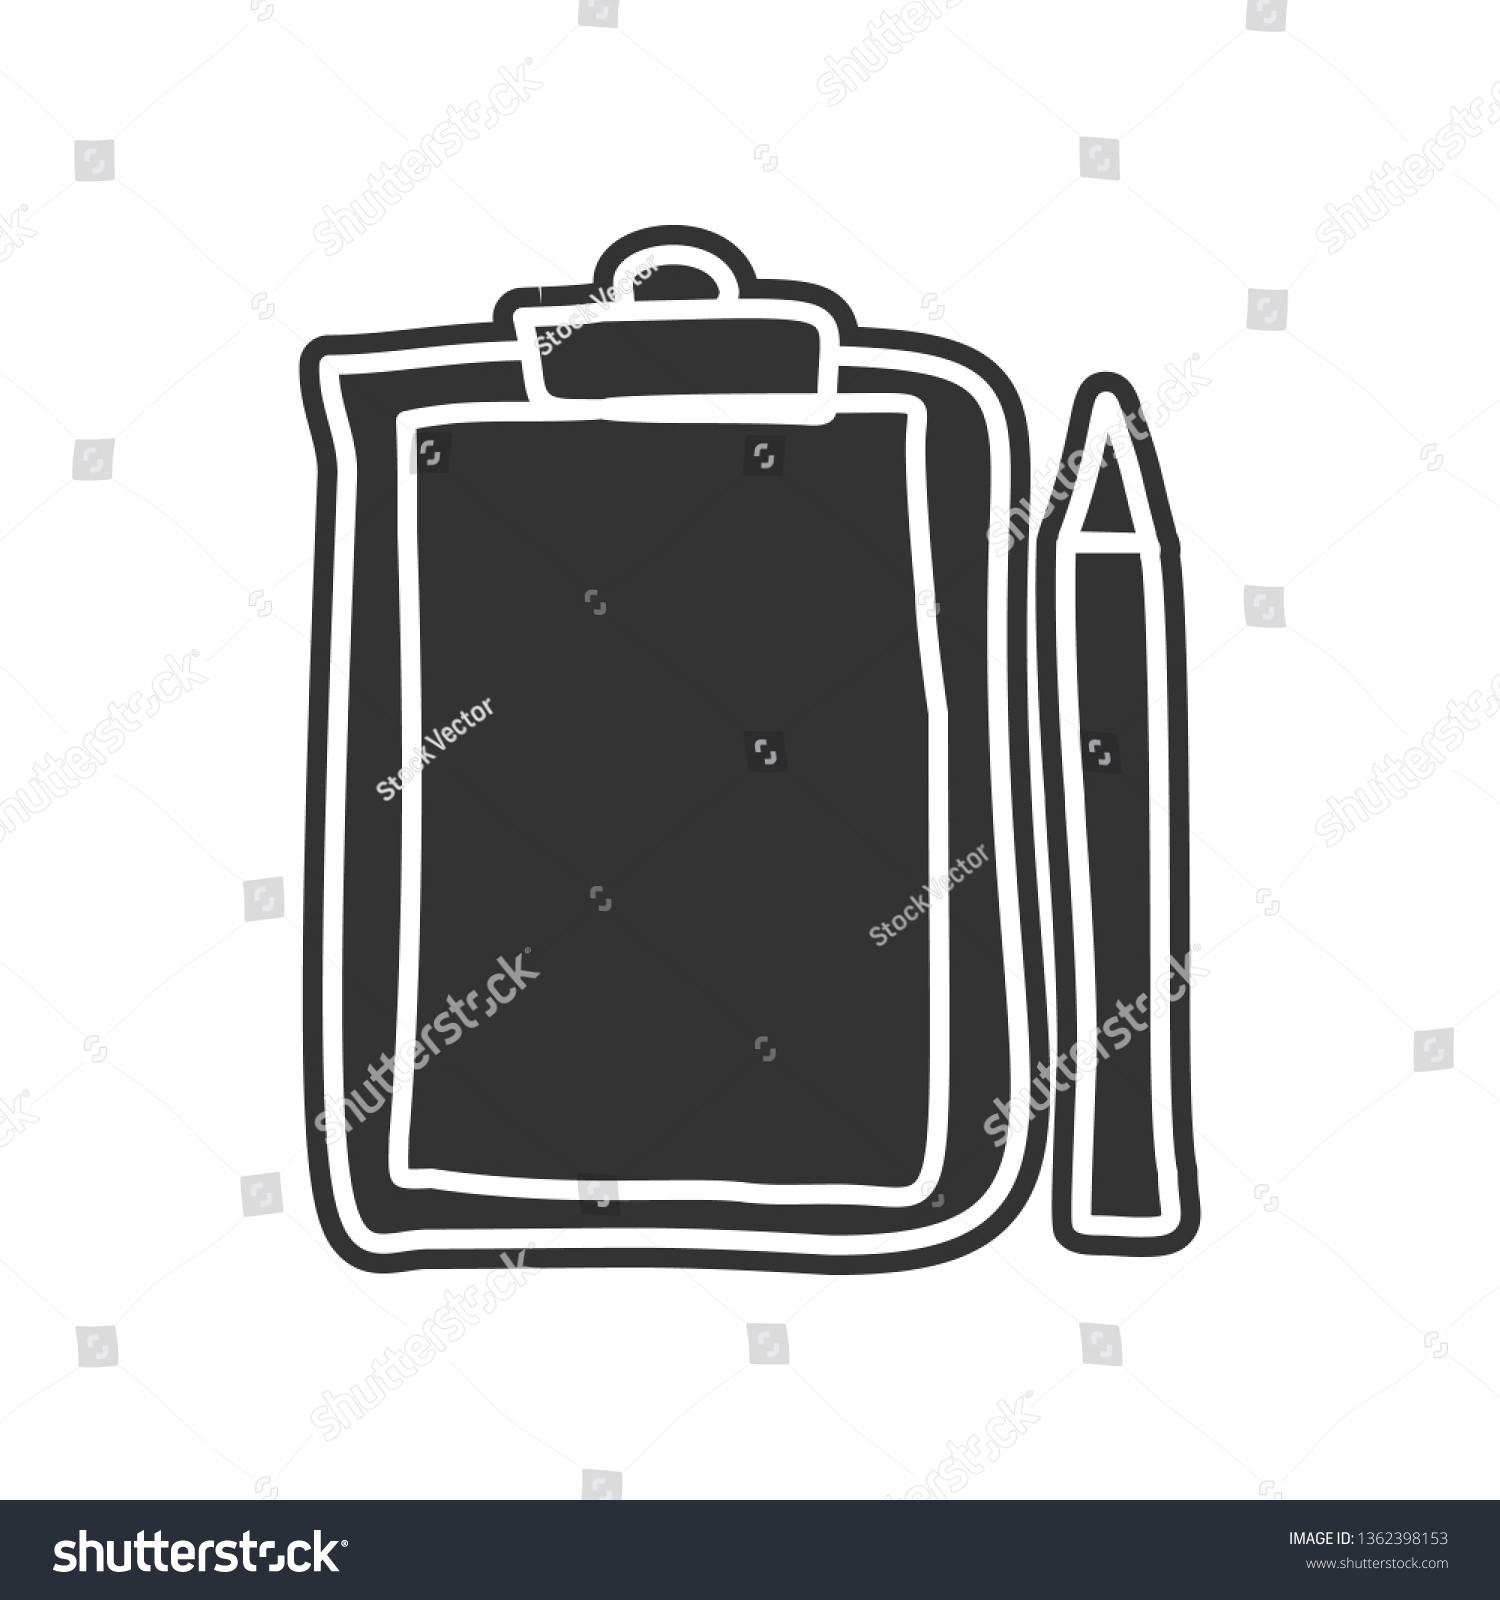 Folder tablet and pencil sketch icon element of education for mobile concept and web apps